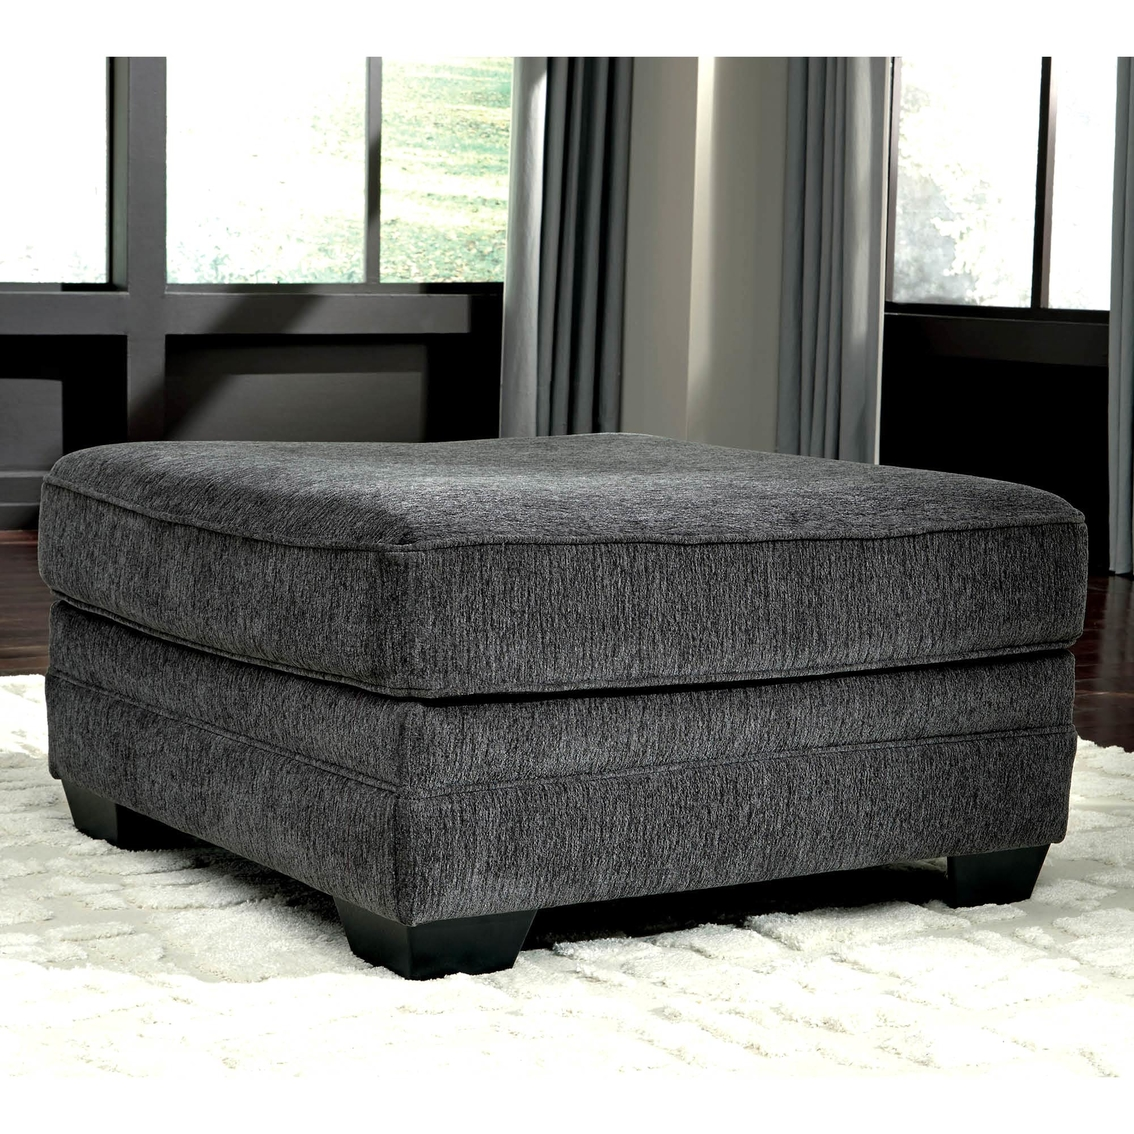 Peachy Benchcraft Tracling Oversized Ottoman Ottomans Home Uwap Interior Chair Design Uwaporg